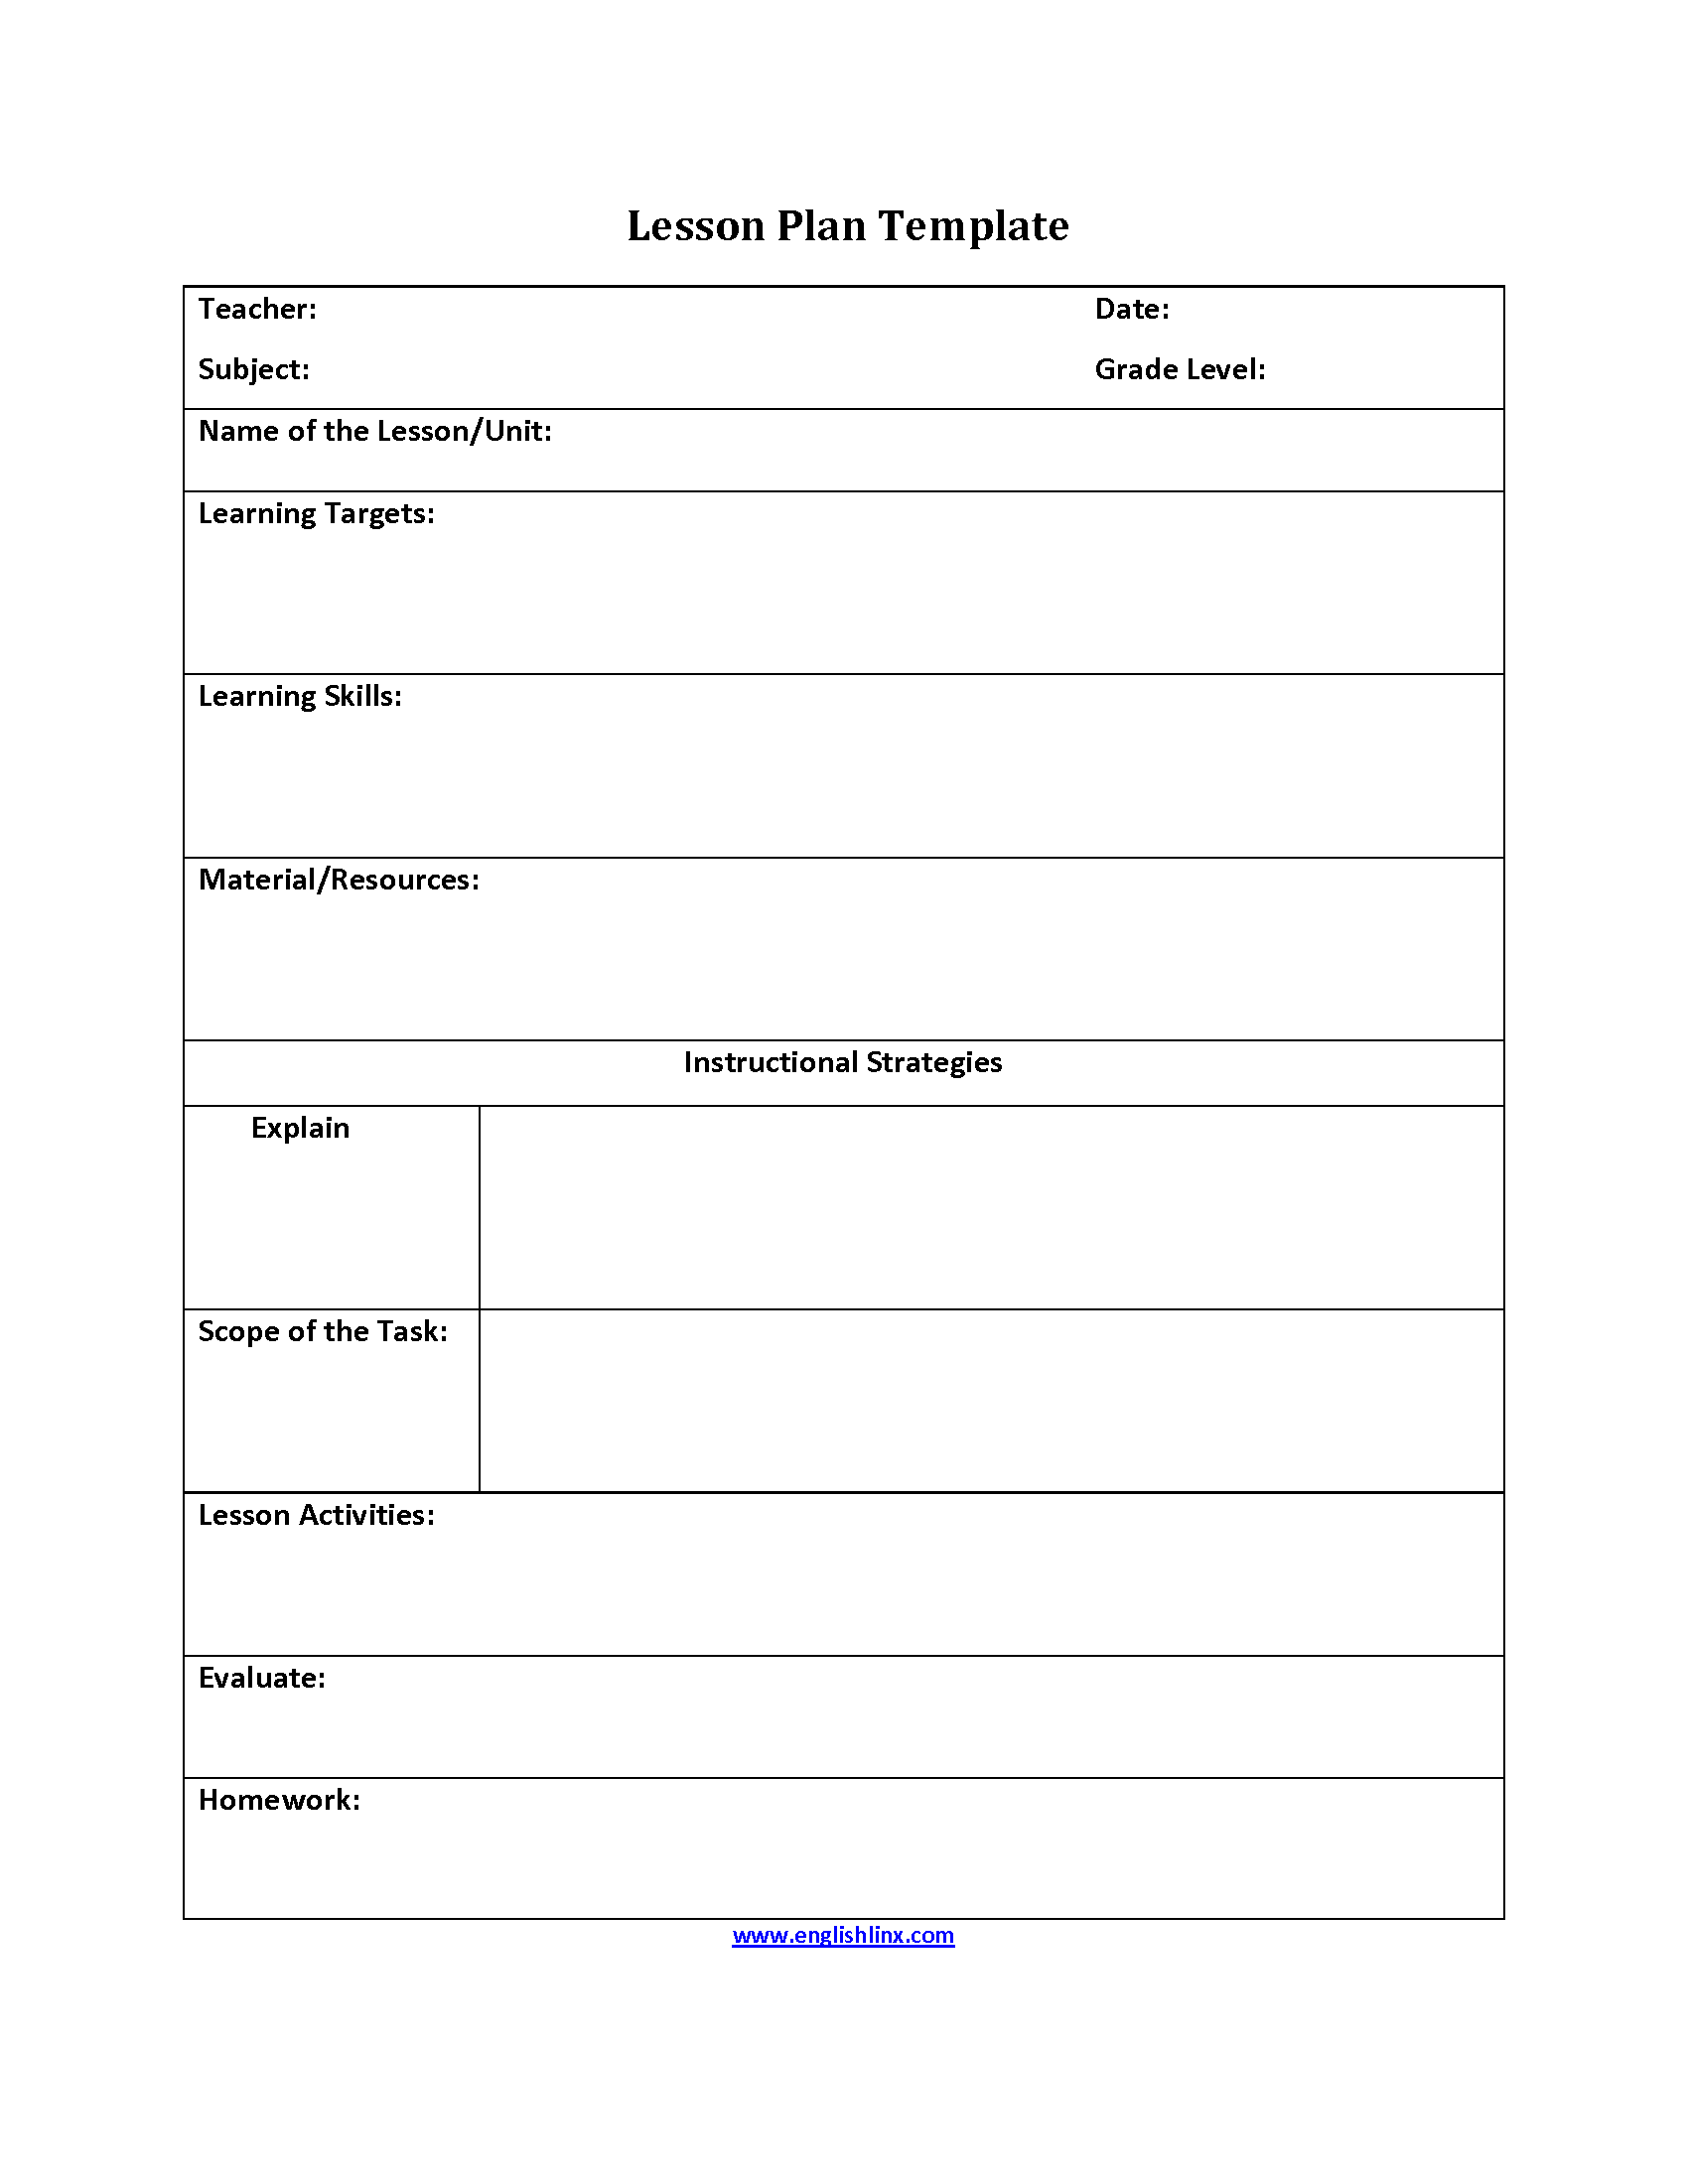 Lesson Plans Template | Englishlinx Com Lesson Plan Template